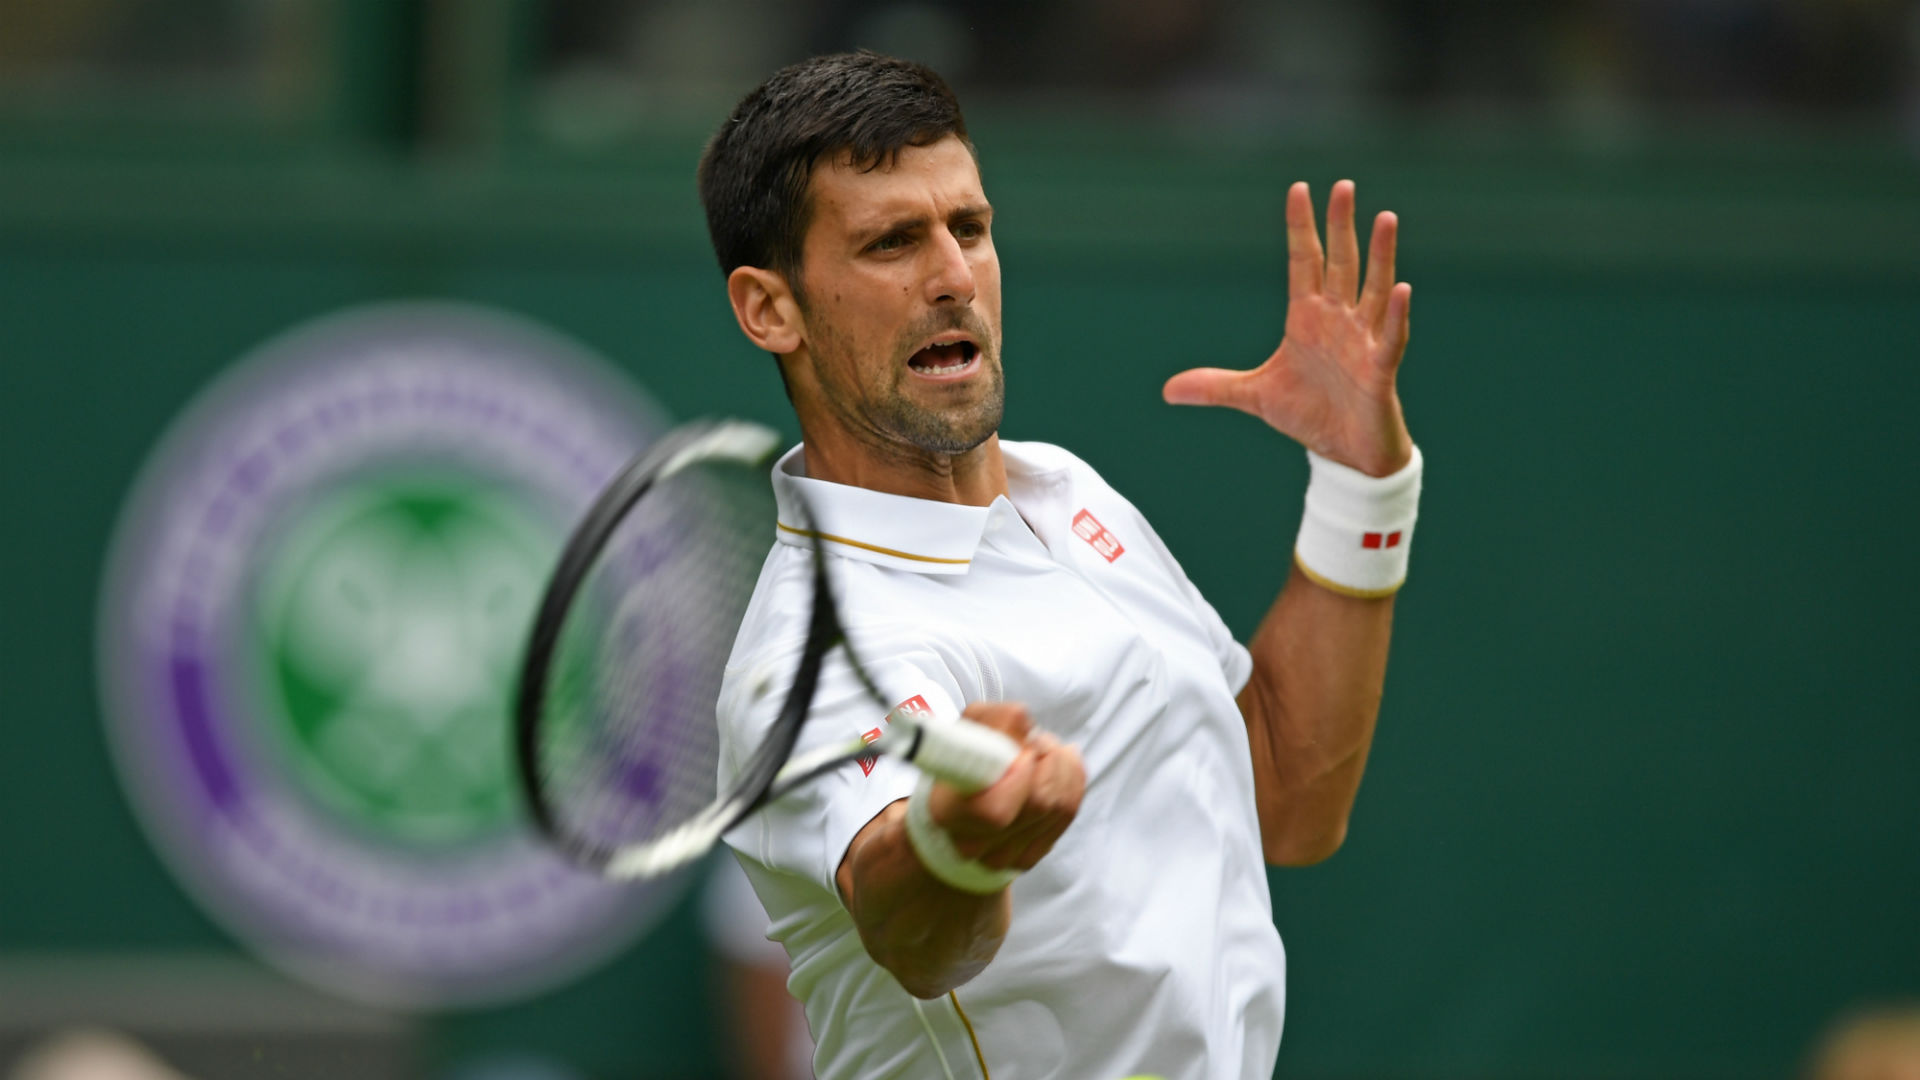 will novak djokovic injury open door for any murray 2016